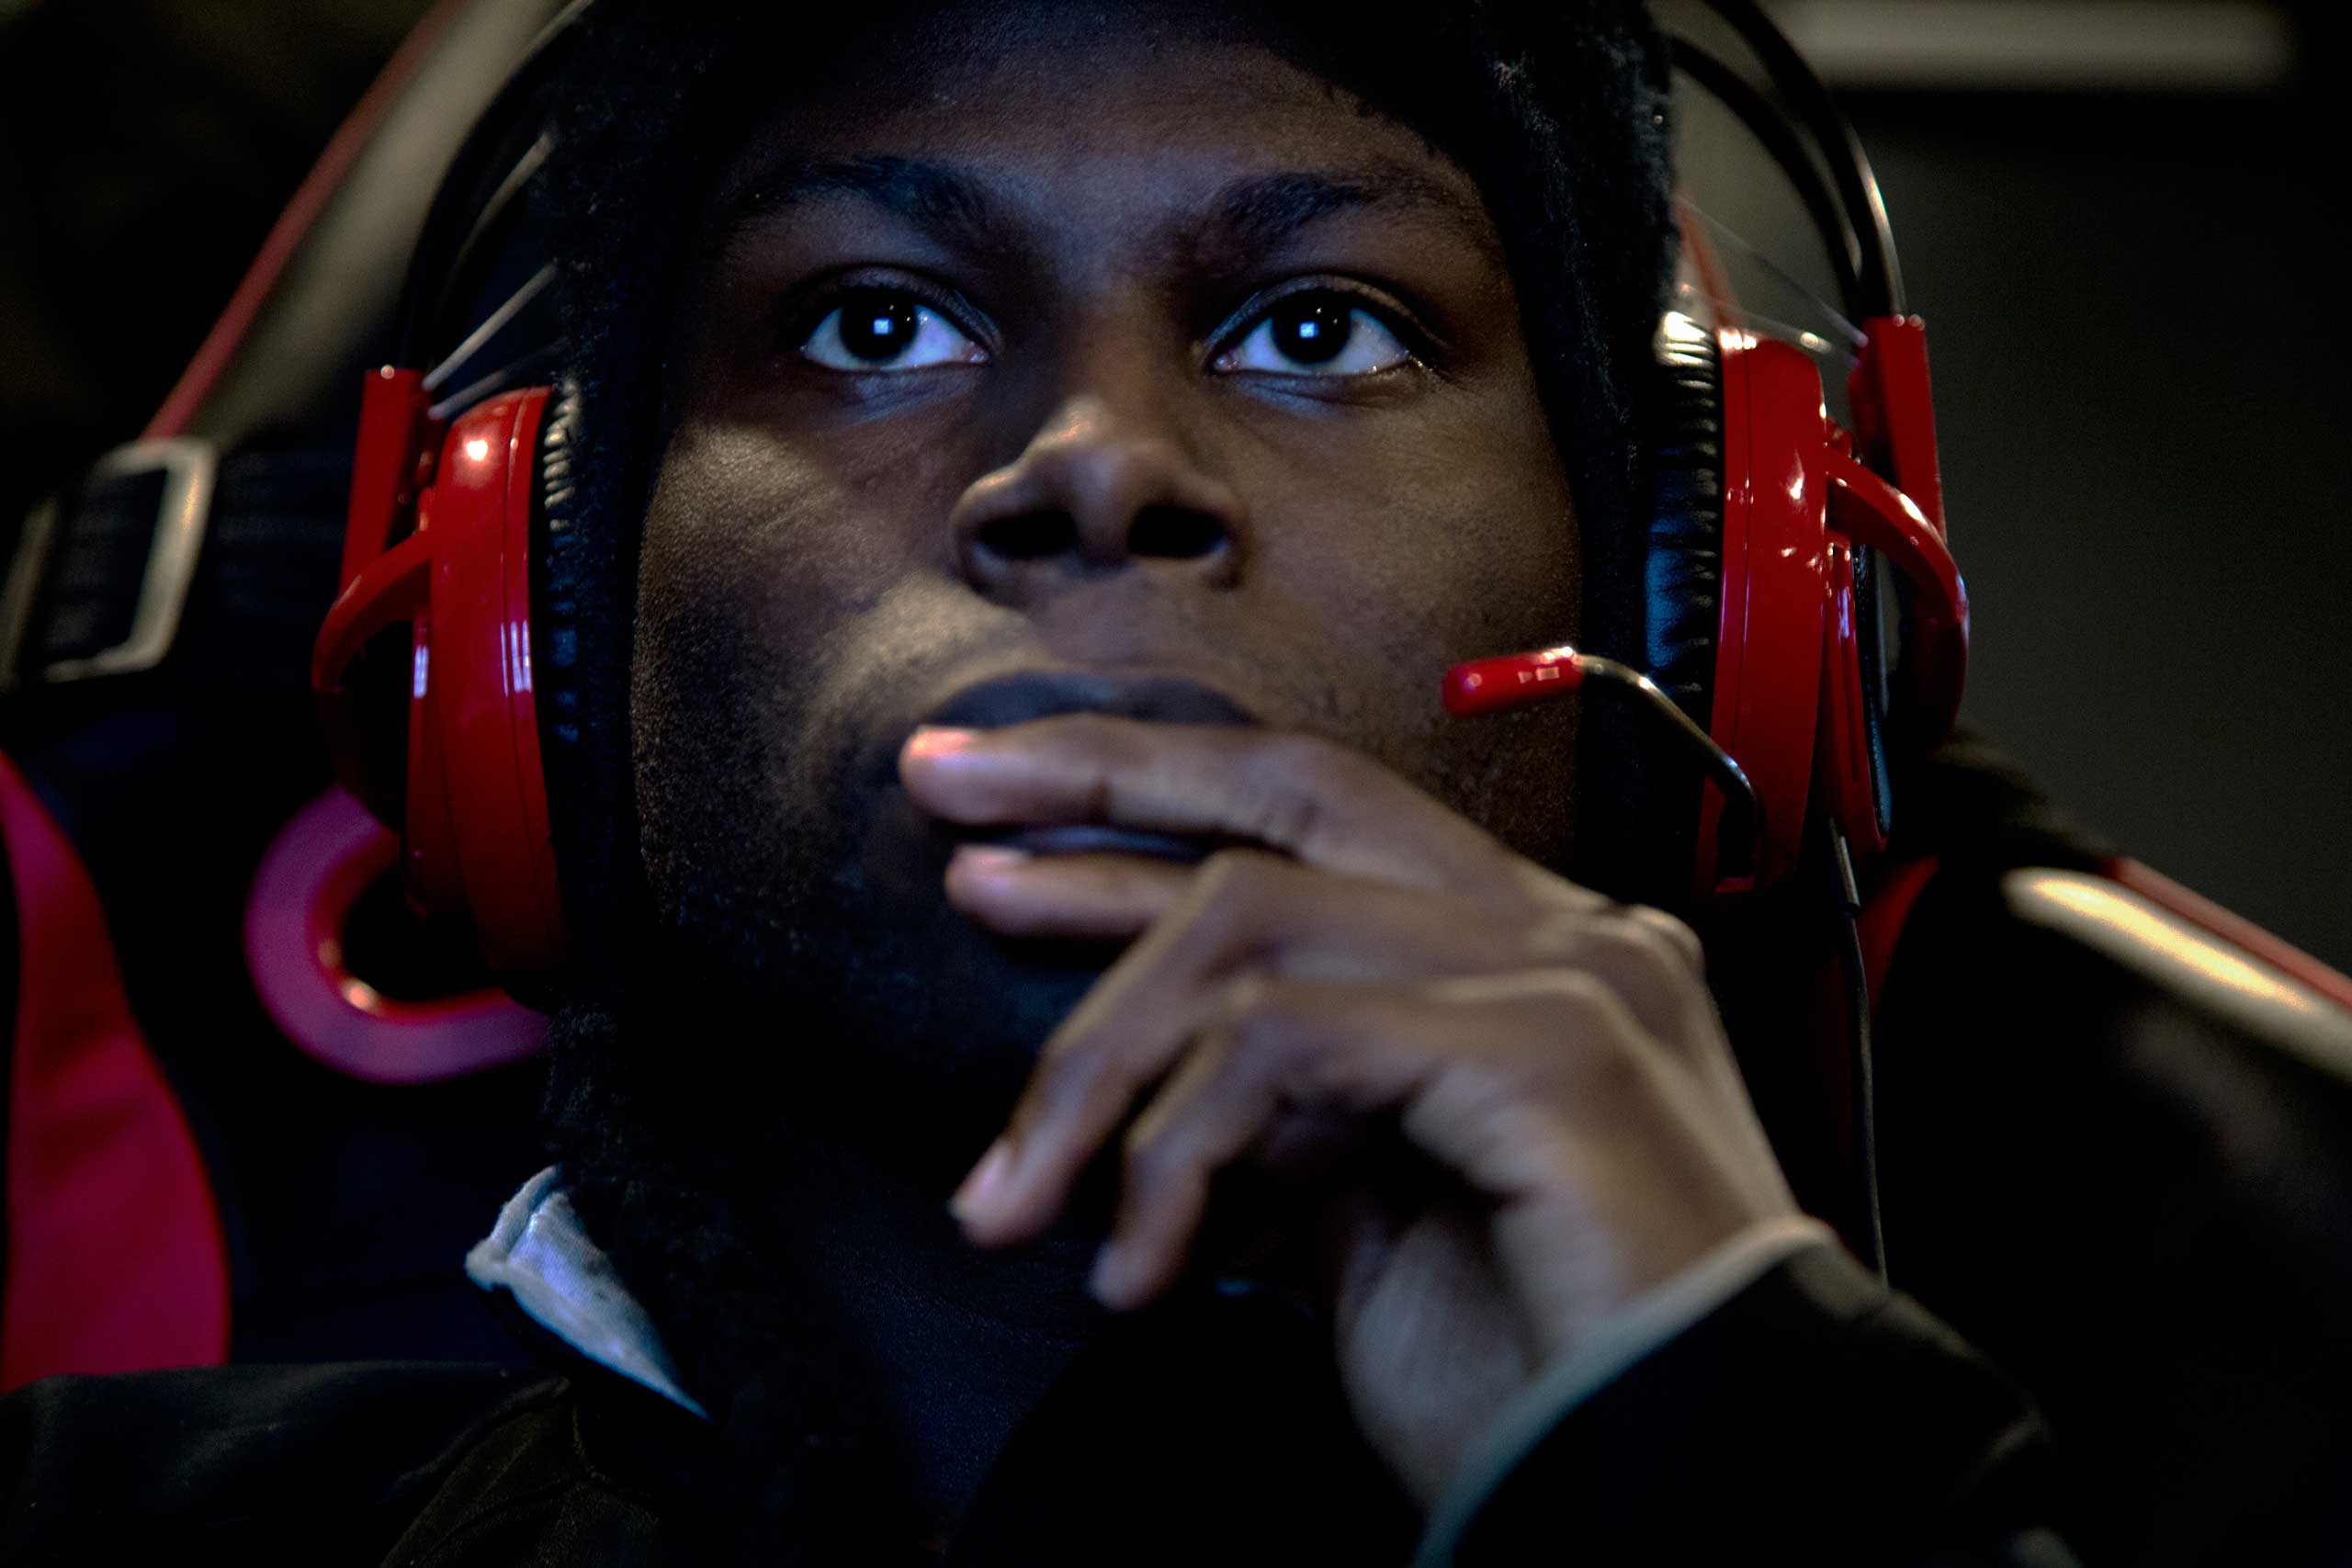 "Chris ""STARS FourEyes"" Broadnax, 21, a graphic design major, plays video games in Robert Morris University's video game practice space in Chicago, March 18, 2015."